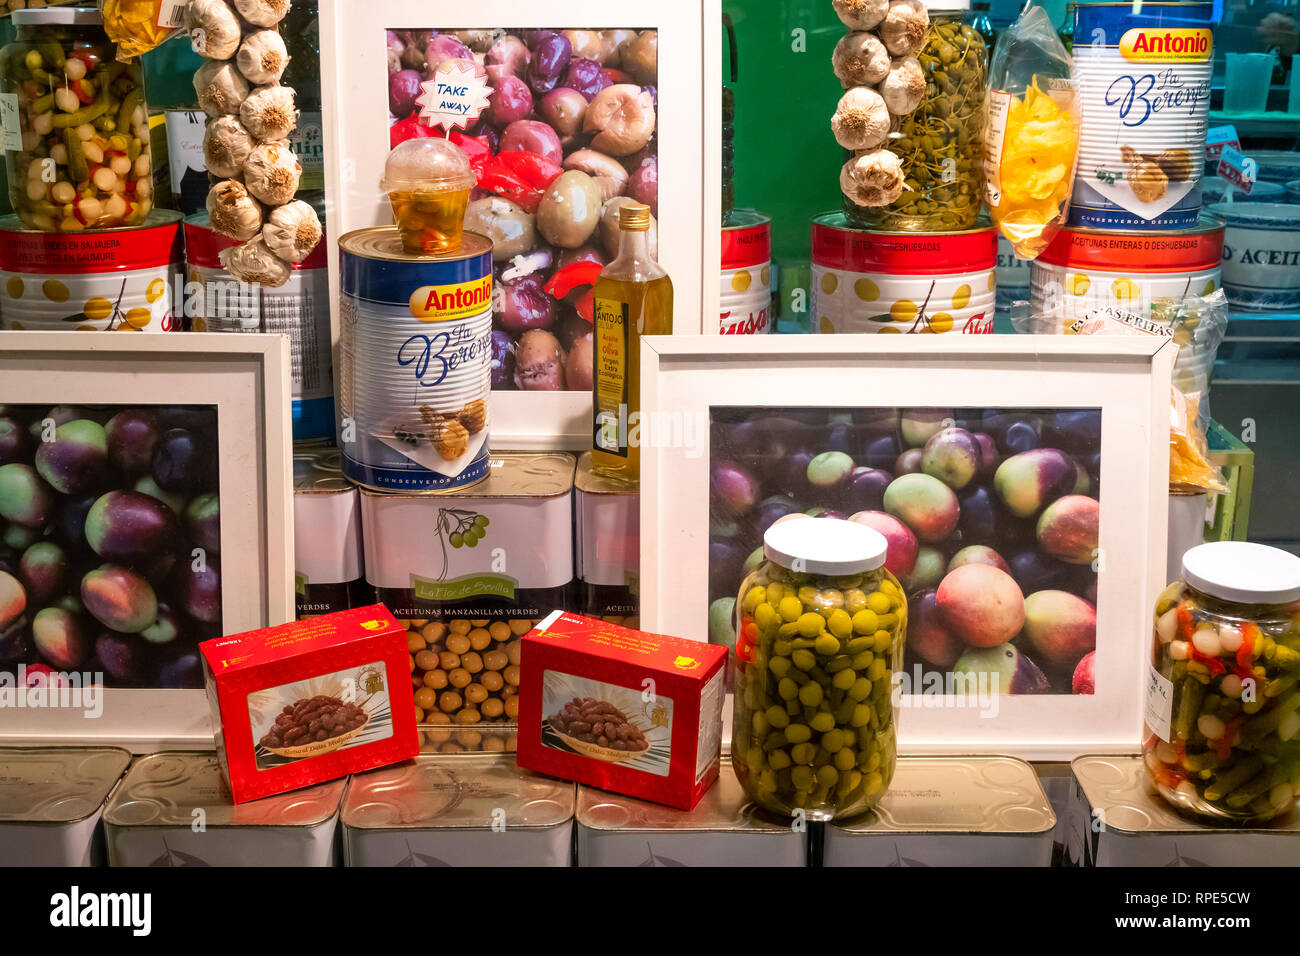 The window display of a small shop specializing in olives and dates - Stock Image